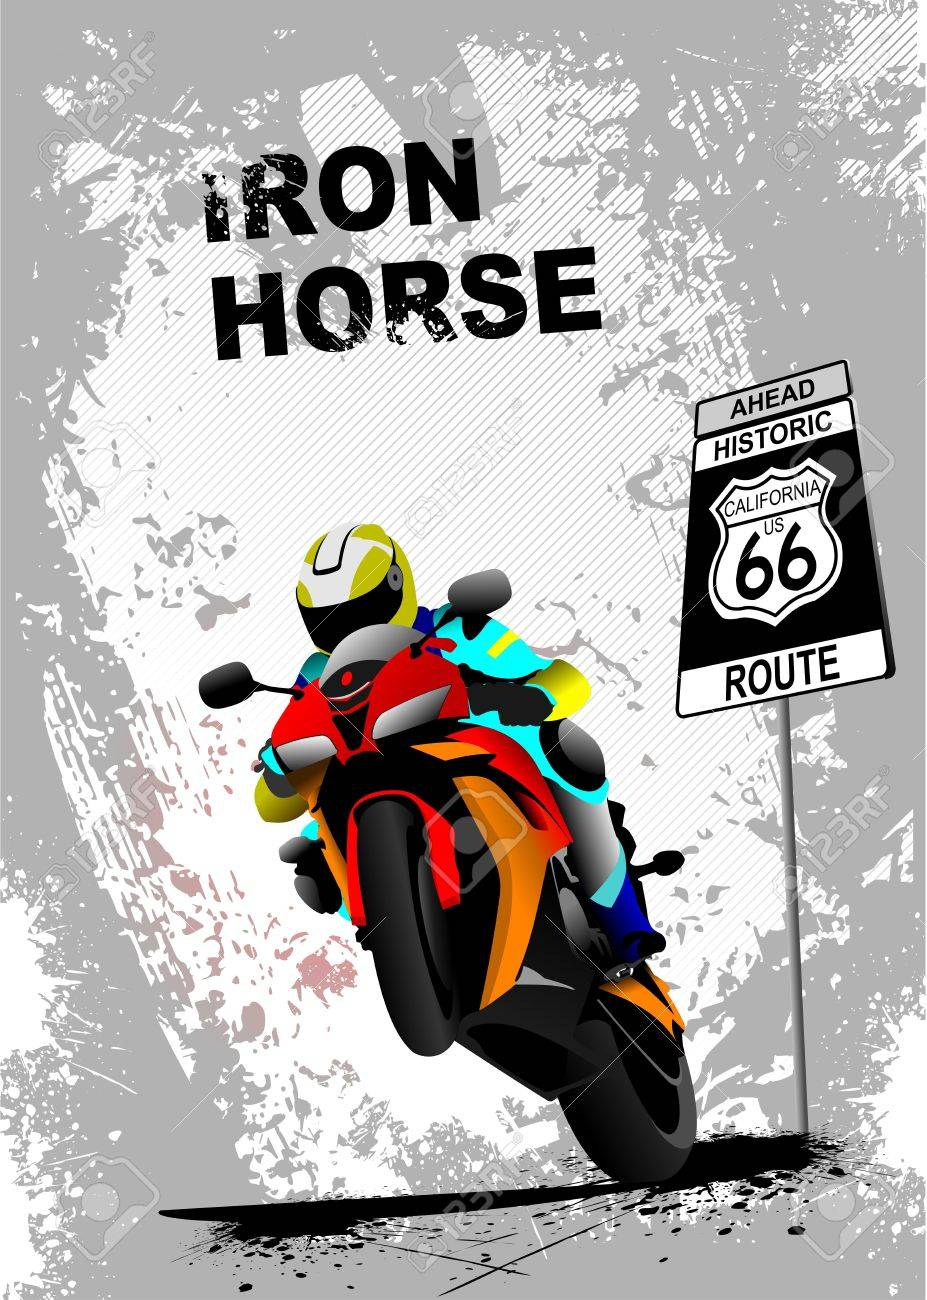 Grunge gray background with motorcycle image. Iron horse. Vector illustration Stock Vector - 11093335